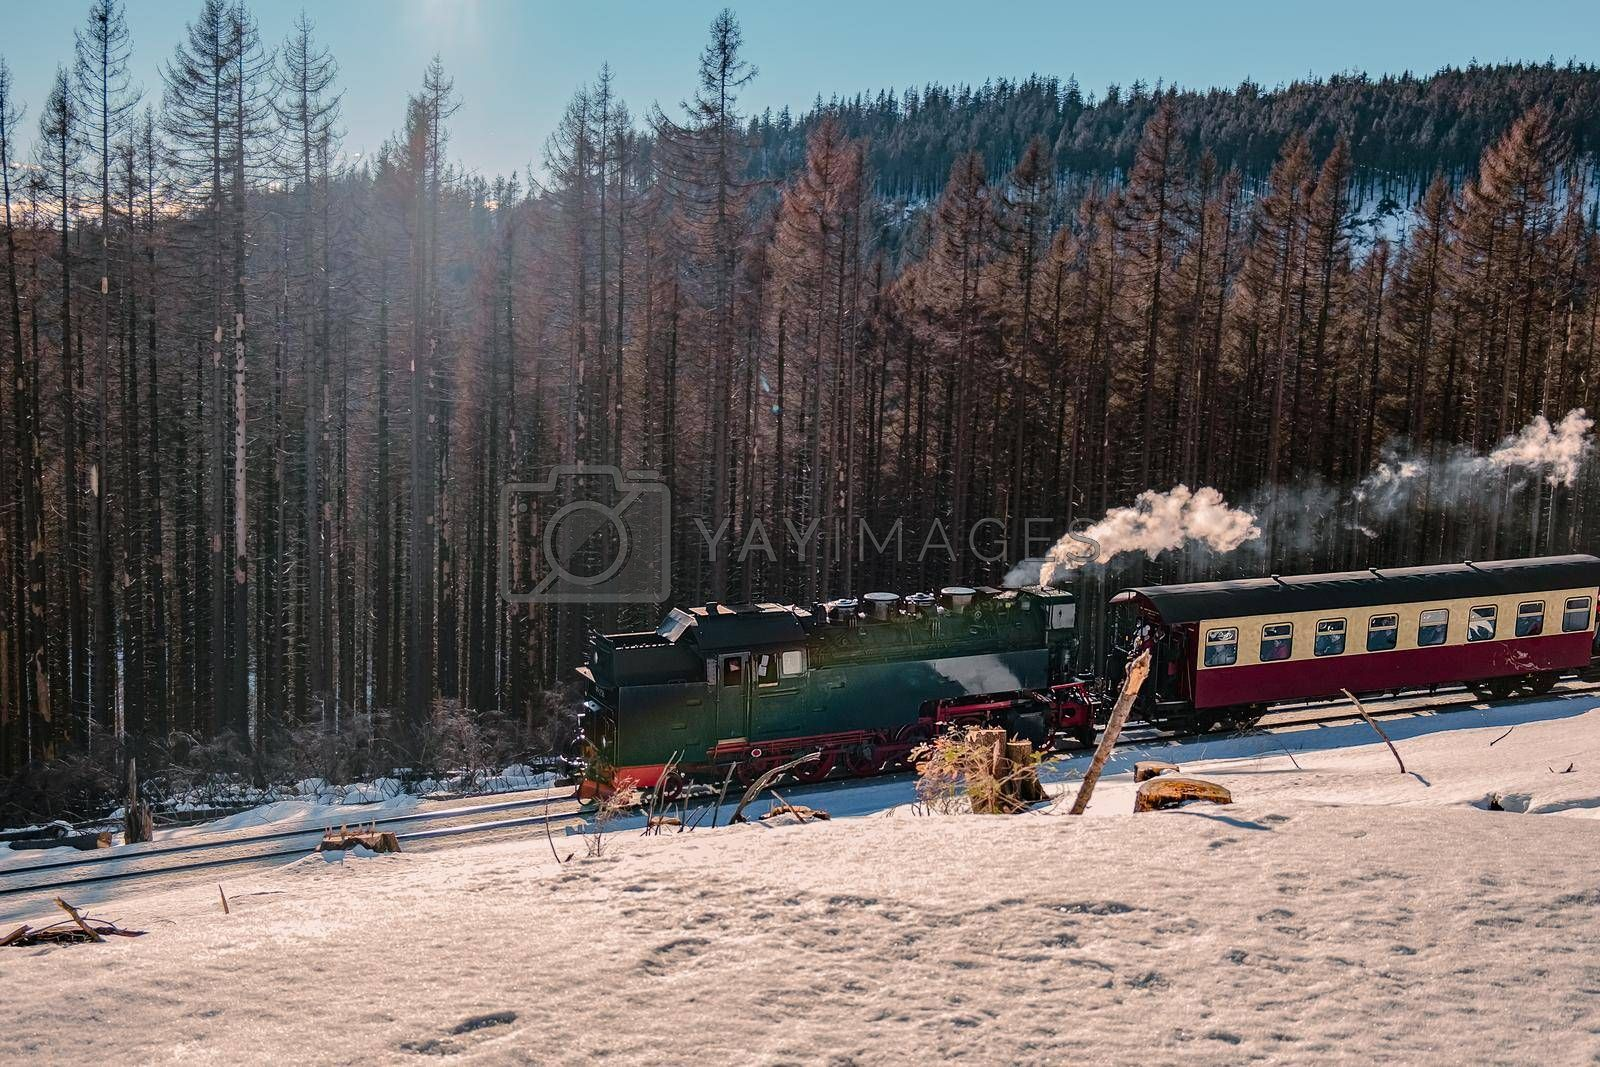 Harz national park Germany, Steam train on the way to Brocken through winter landscape, Famous steam train throught the winter mountain . Brocken, Harz National Park Mountains in Germany by fokkebok